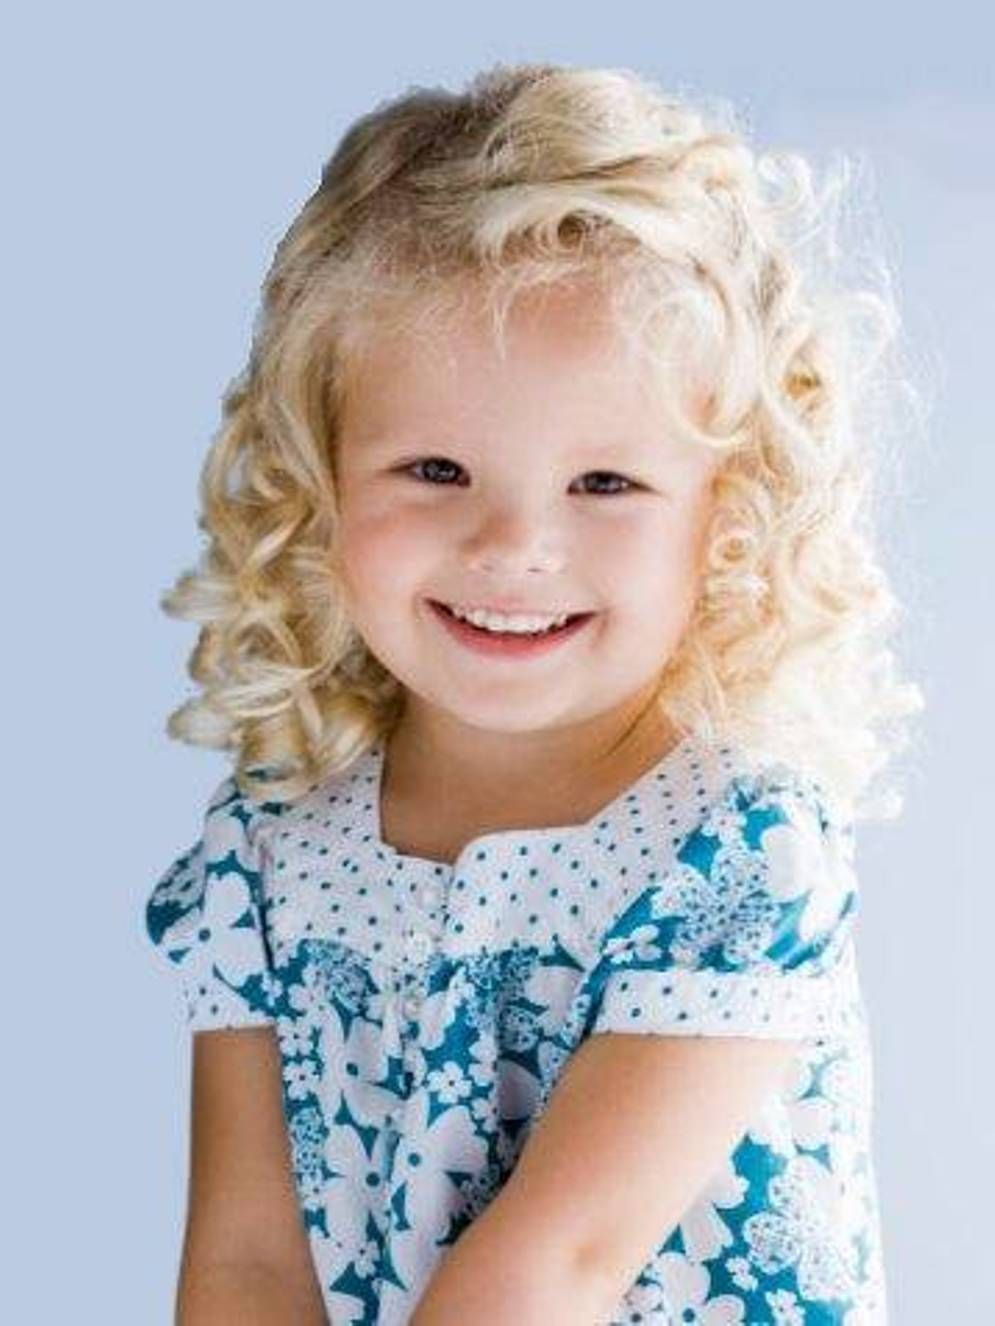 Magnificent Hairstyles For Toddler Girl Hairstyles For Toddlers And Toddler Hairstyle Inspiration Daily Dogsangcom